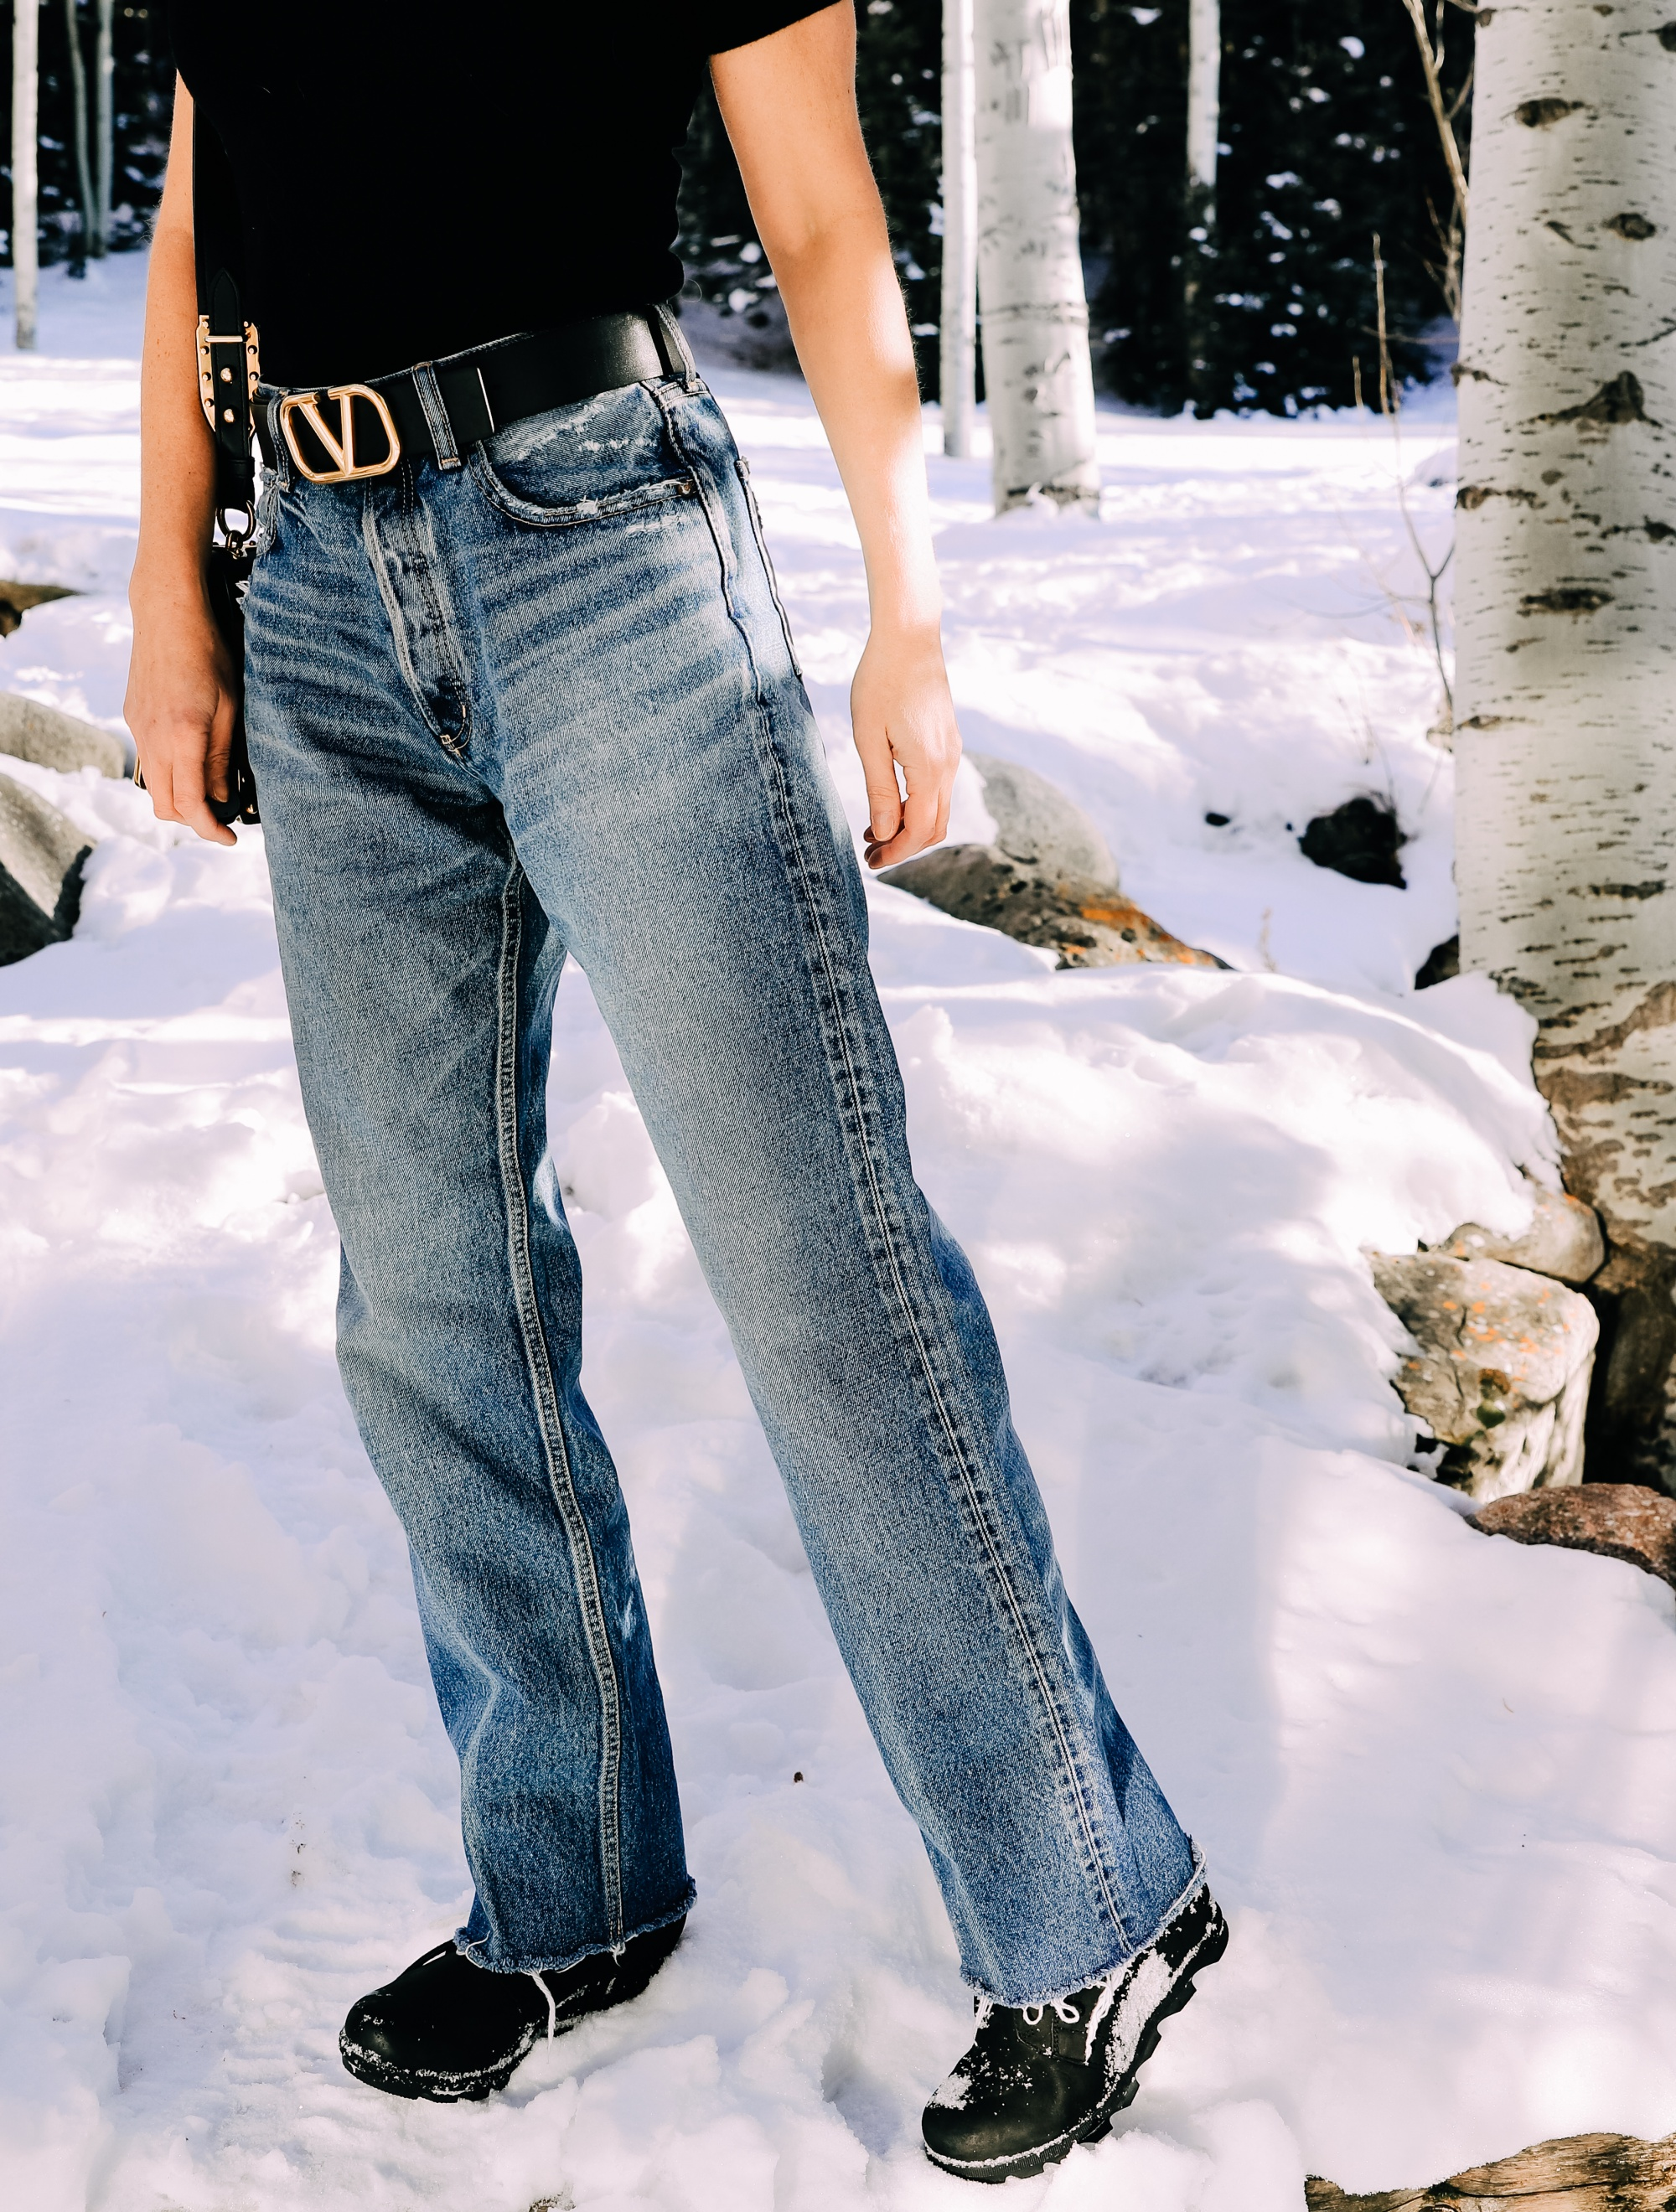 baggy, relaxed jeans by Moussy vintage on fashion over 40 blogger Erin Busbee featuring fashion trends 2021